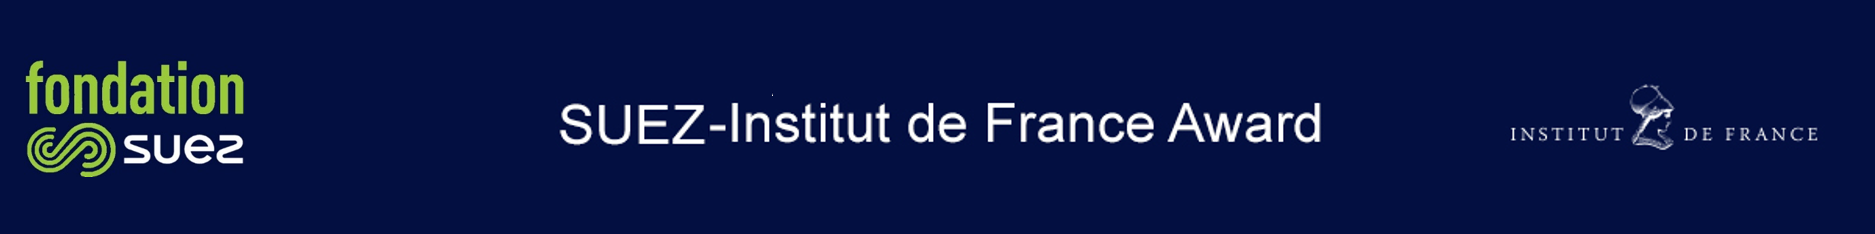 SUEZ-Institut de France Award | 6th edition | 2017-2018